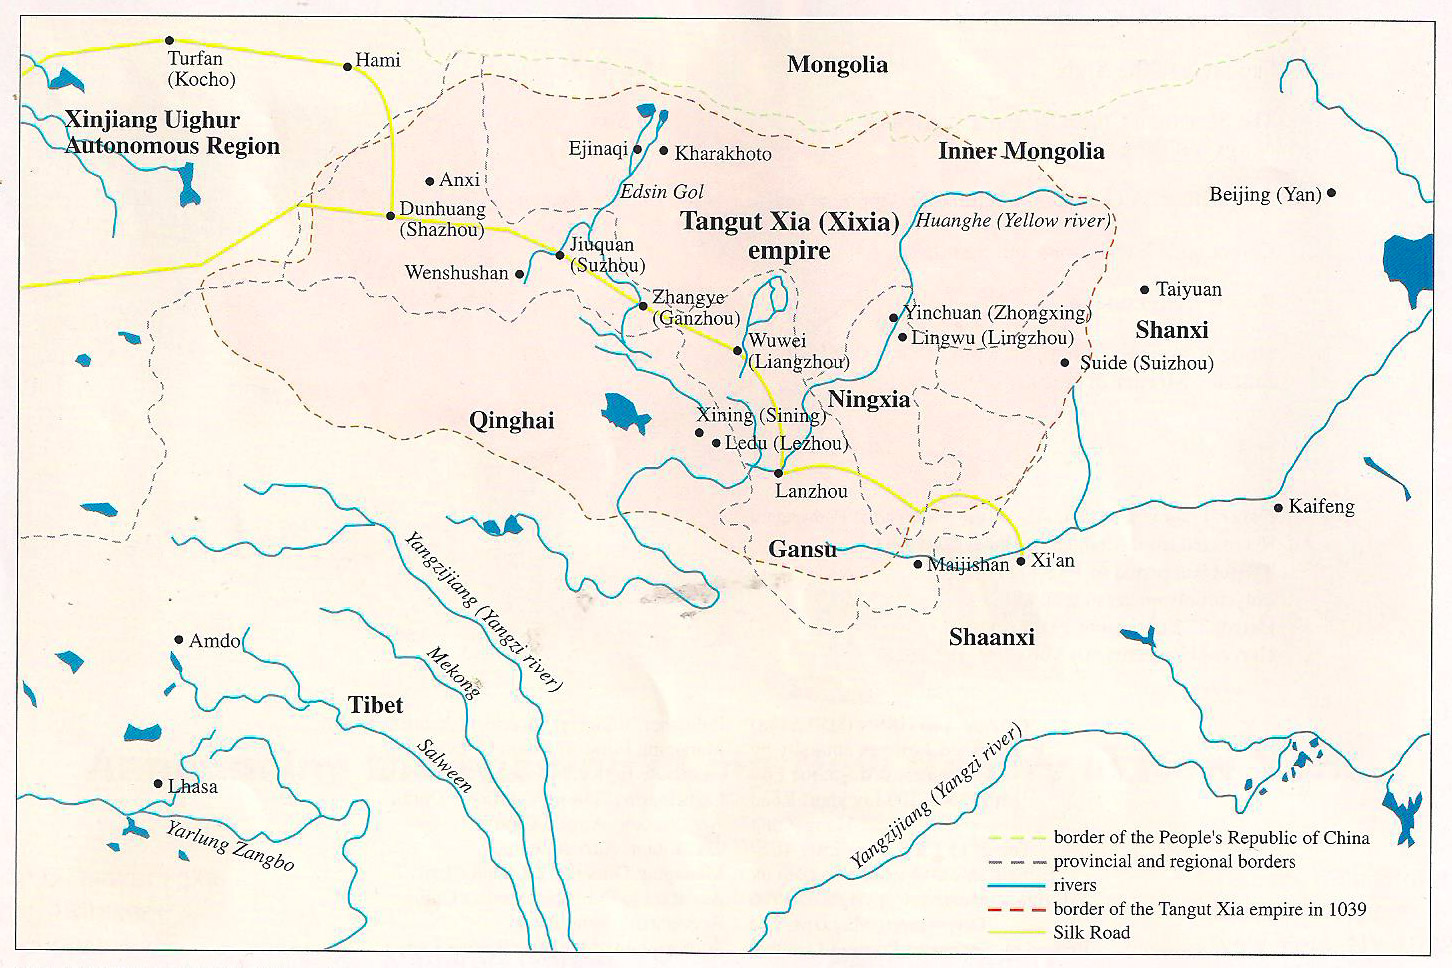 Yuan Dynasty Map on mongol invasion of china, yi dynasty map, yuan empire, aztec map, mongol invasions of korea, mongol conquest of the song dynasty, delhi sultanate map, ming dynasty map, china map, yin dynasty map, ch'ing dynasty map, chagatai khanate map, qin dynasty map, trần thủ �ộ, mongol invasions of japan, battle of baghdad, mongol invasion of poland, capetian dynasty map, shang dynasty map, jin dynasty map, tang dynasty map, sui dynasty map, ch'in dynasty map, goryeo map, nestorian christians map, mongol invasion of europe, battle of mohi, mongol invasion of java, mongol conquests, mongol invasions of india, kingdom of albania map, qing dynasty, chen dynasty map,